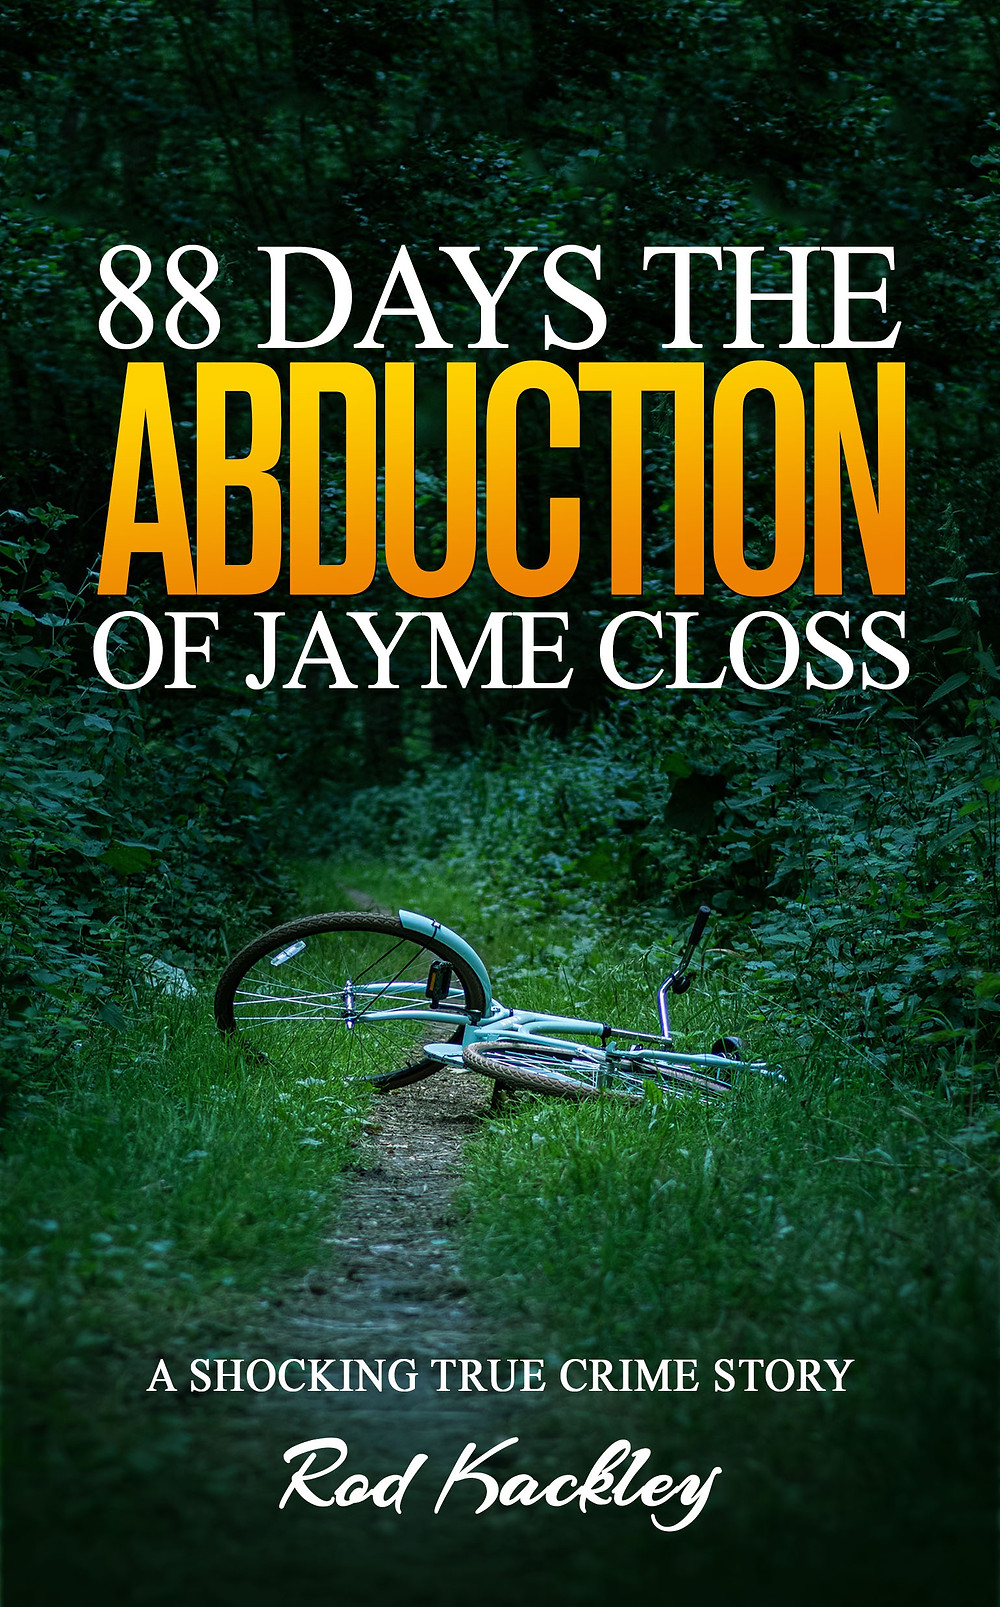 88 Days The Abduction of Jayme Closs